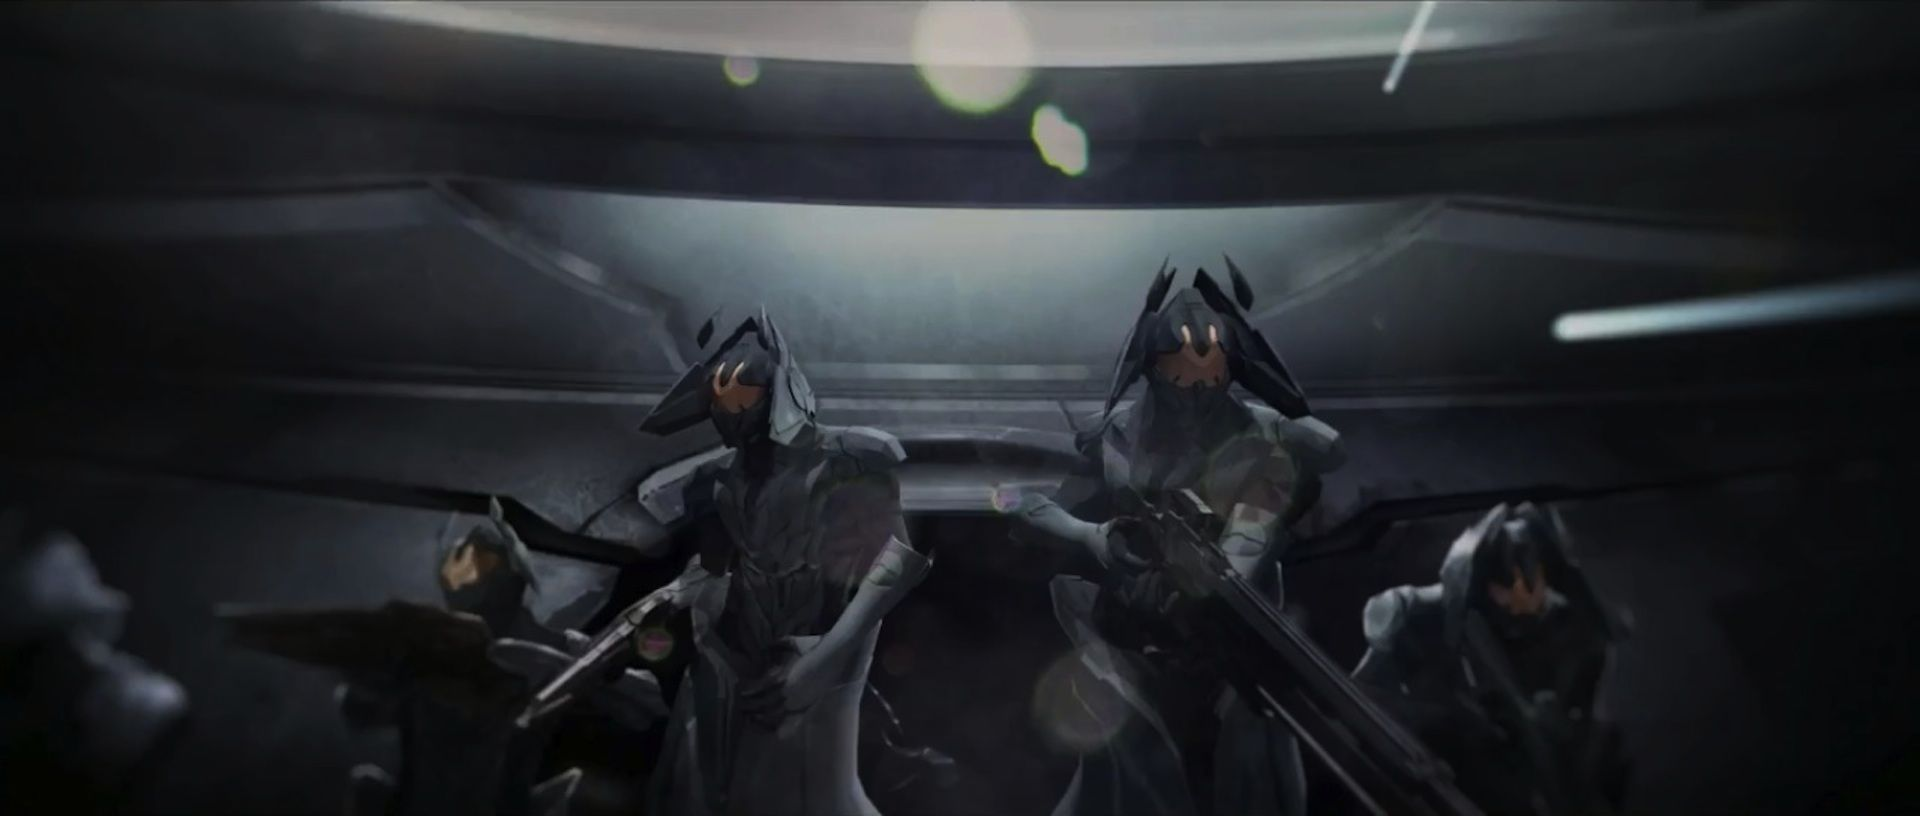 Pin by Jacob Miller on Halo Forerunners | Halo, Release date, Character